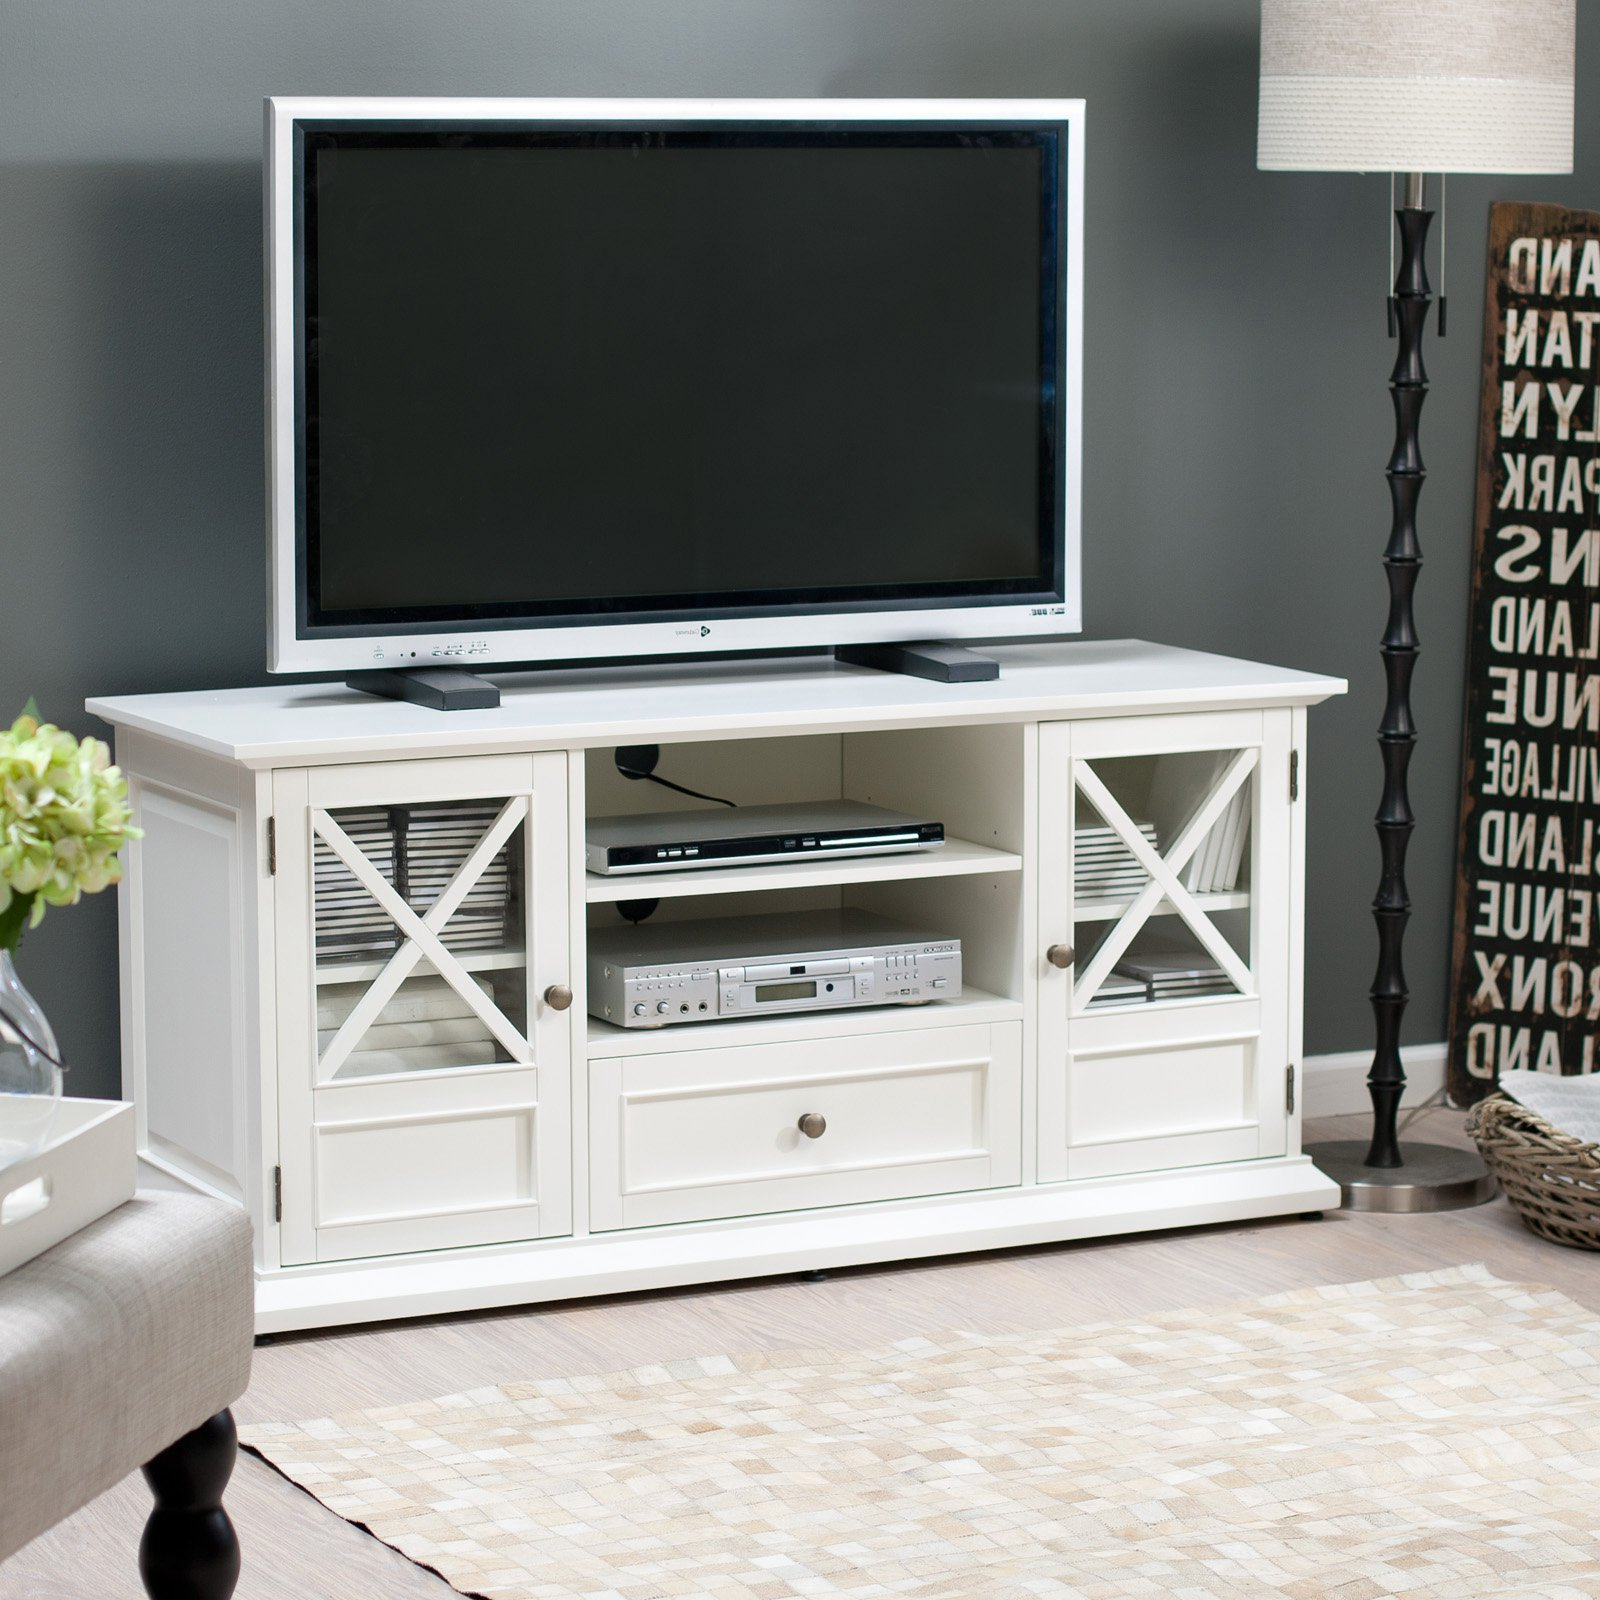 Fashionable Long White Tv Stands With Regard To Belham Living Hampton Tv Stand – White – Walmart (View 18 of 20)